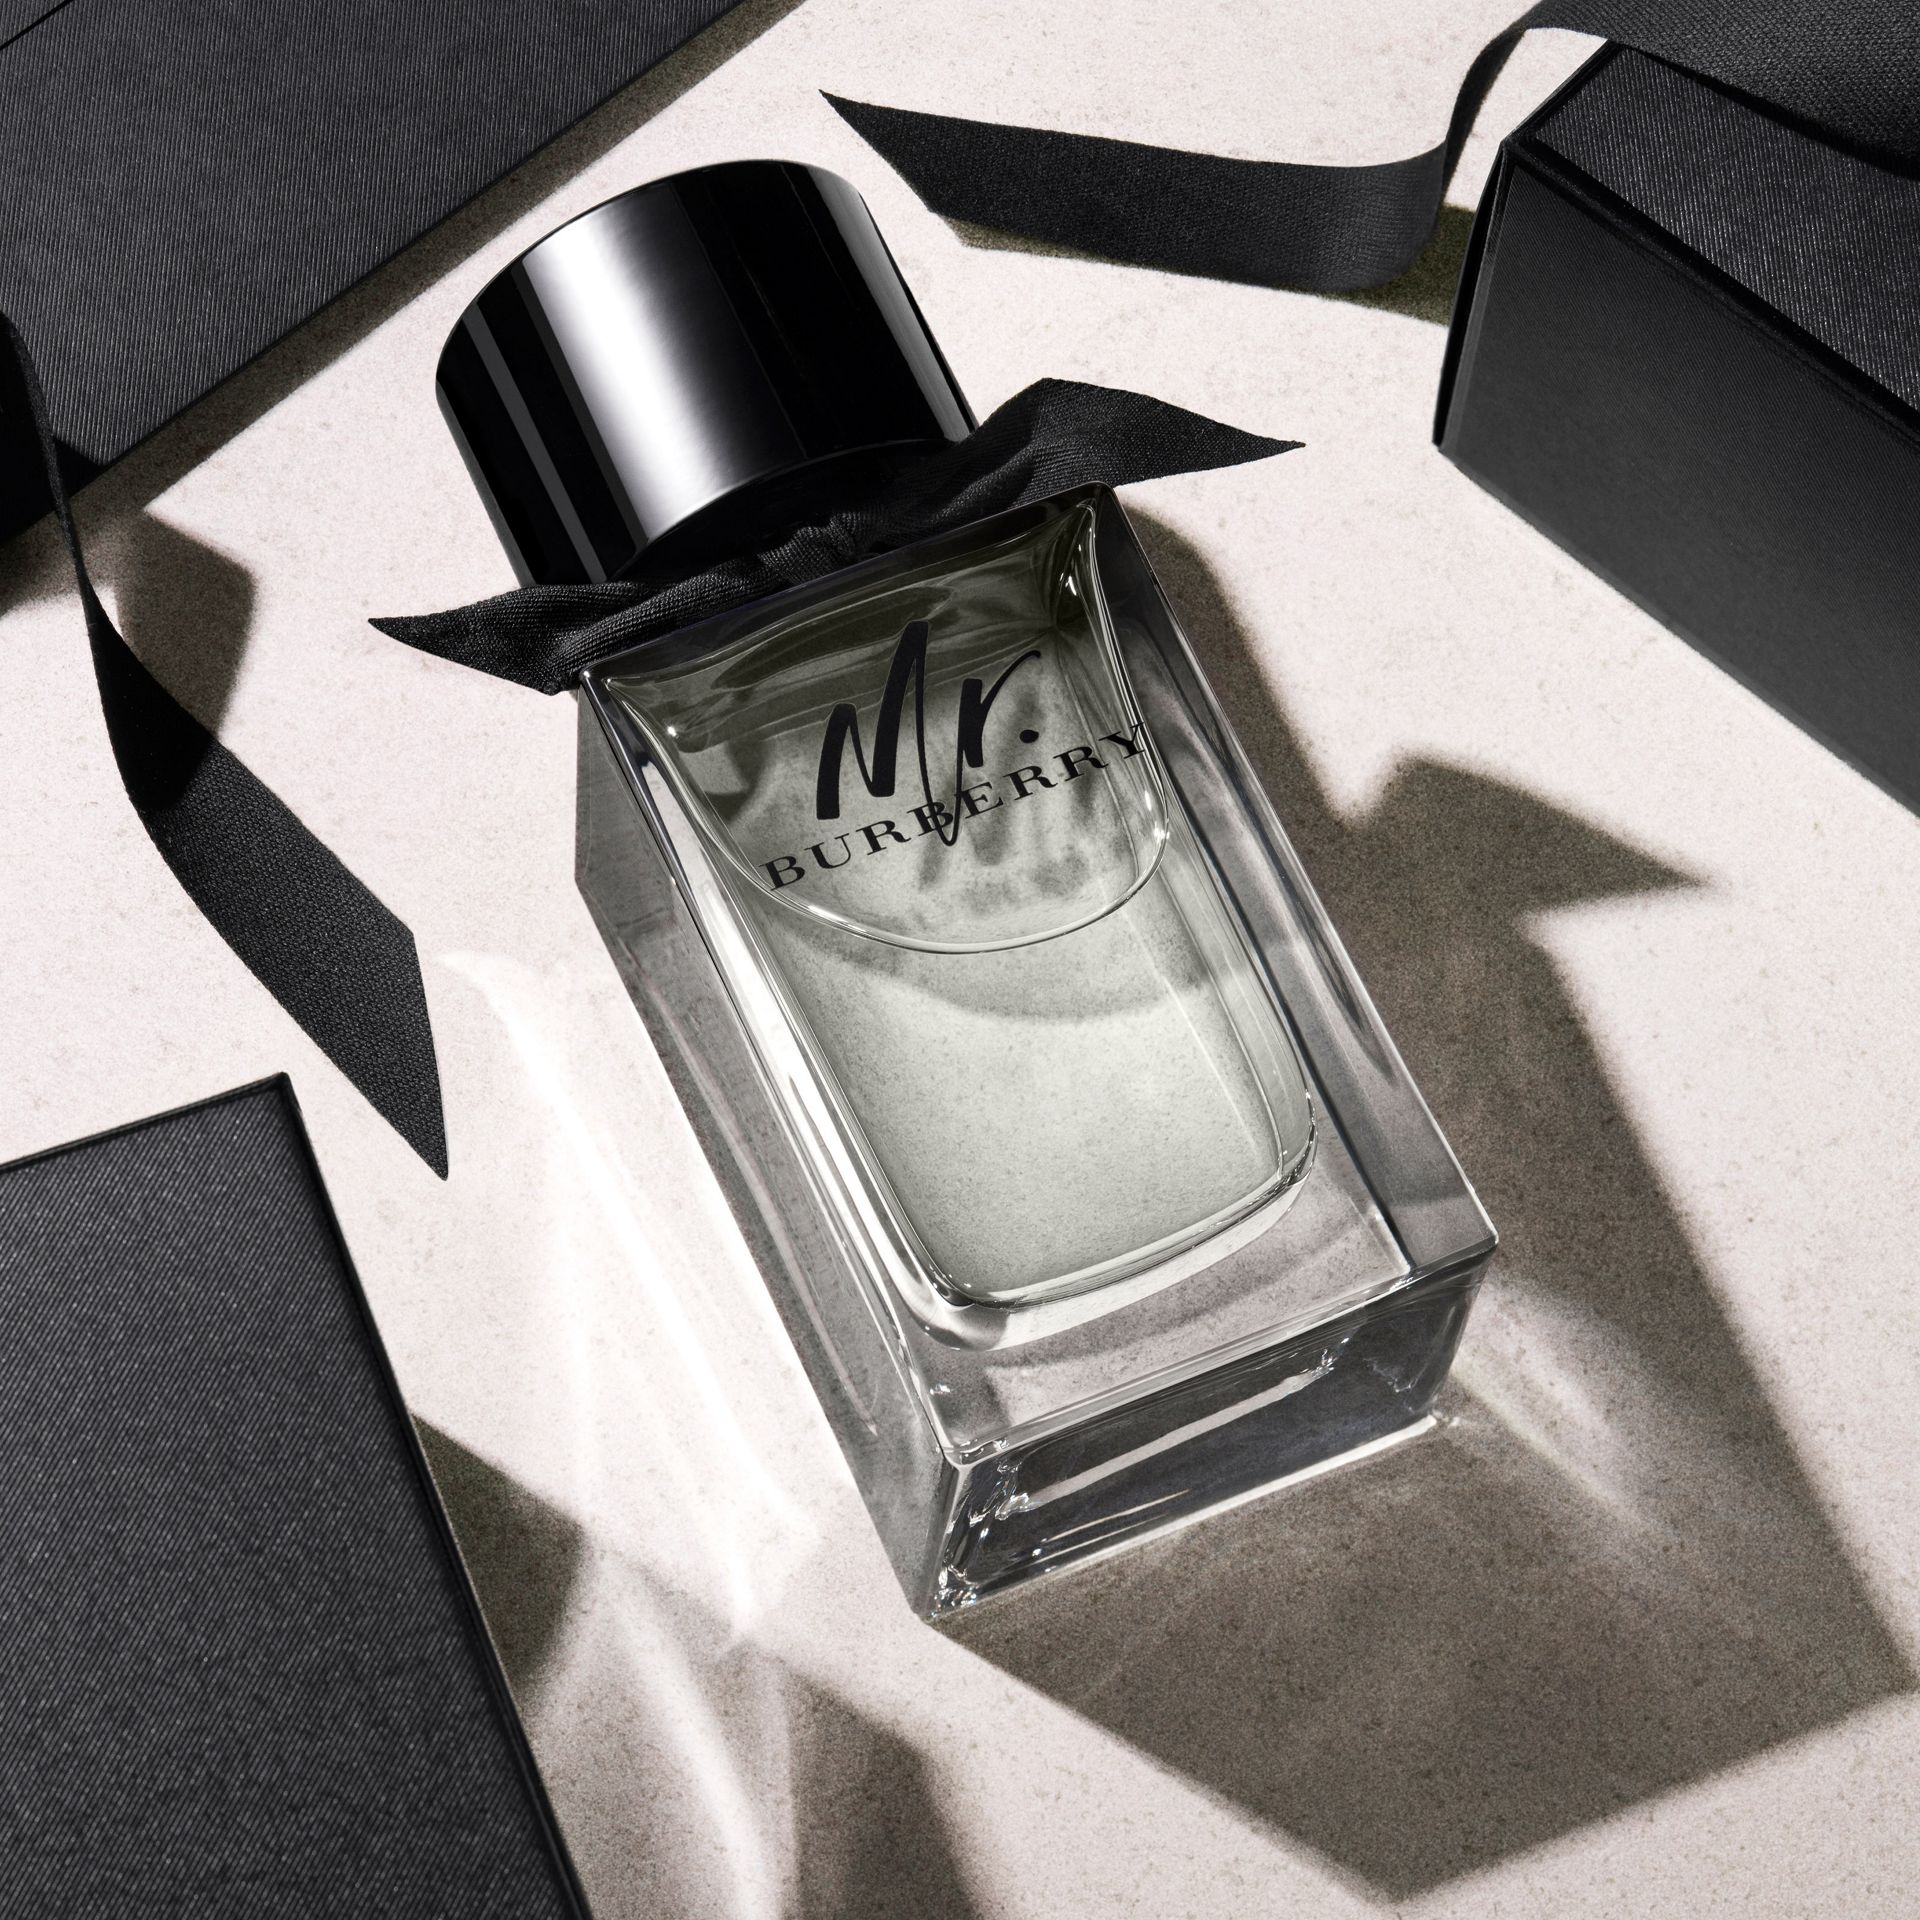 Mr. Burberry Eau de Toilette 150 ml | Burberry - Galerie-Bild 3